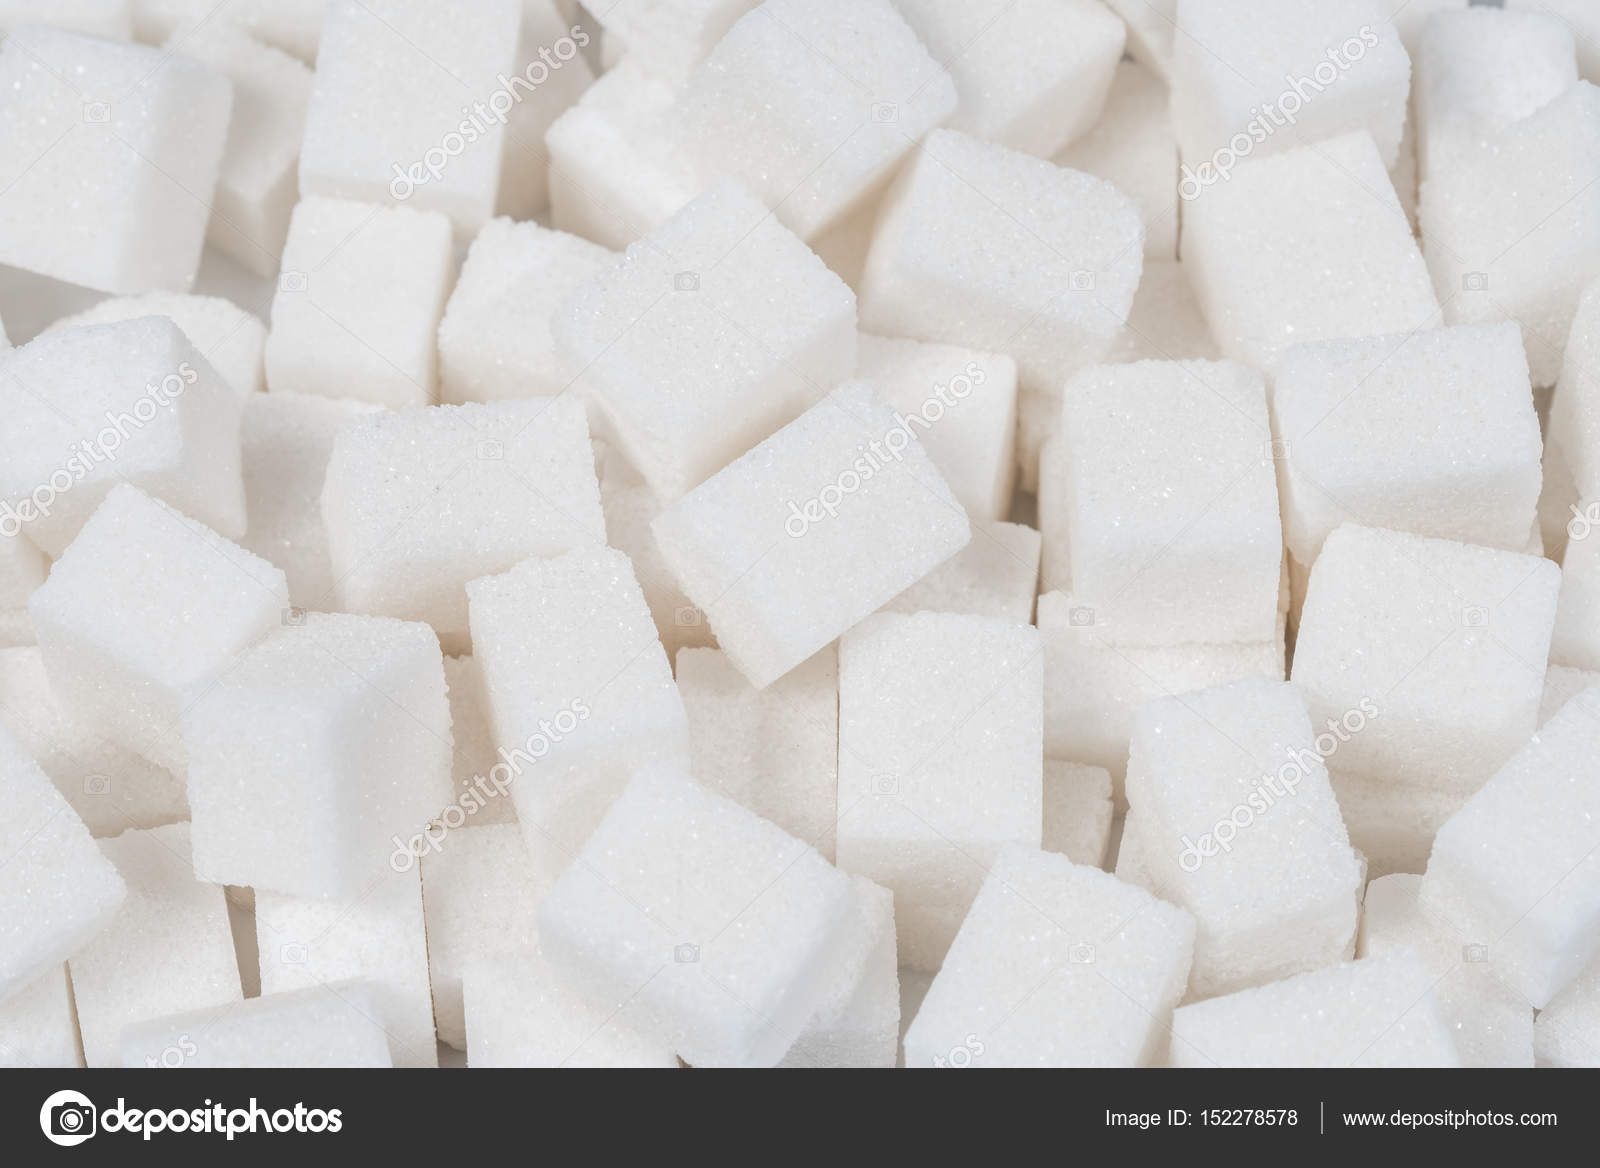 Sugar Background Sweet Food Ingredient With A Close Up Of A Pile Of